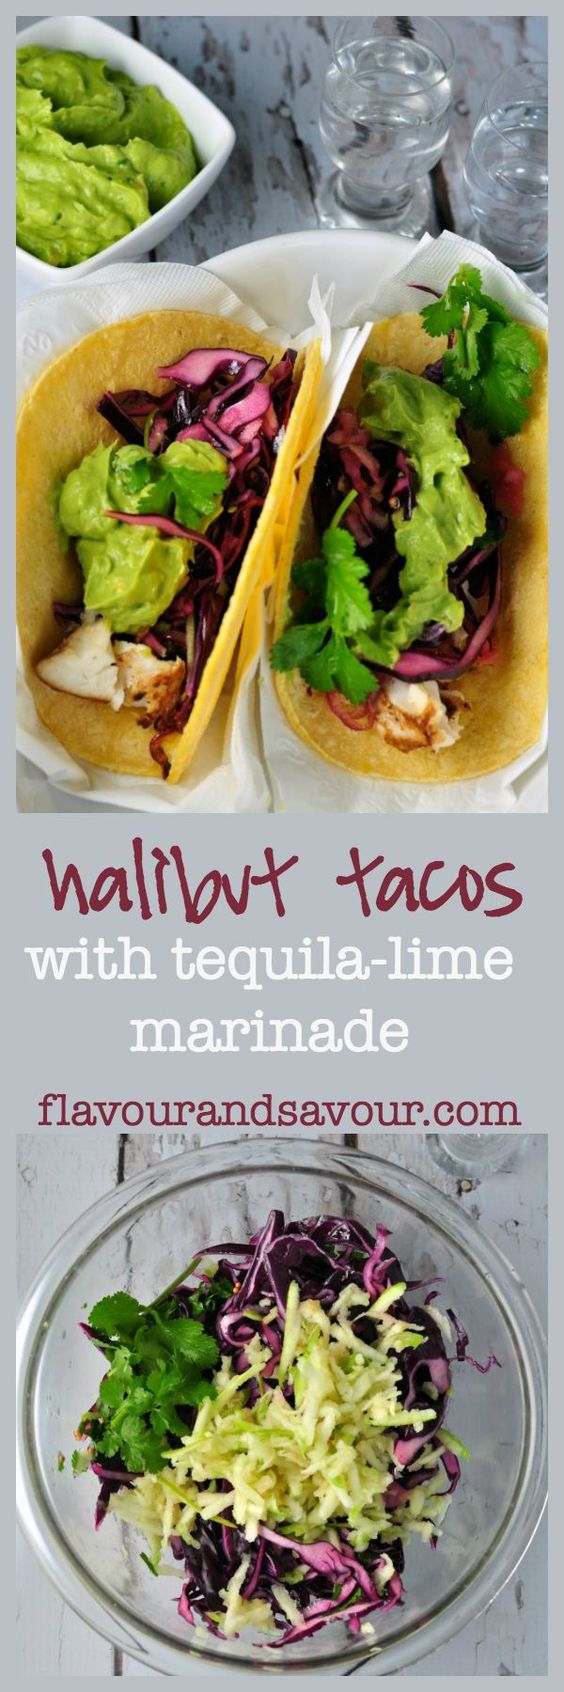 Halibut Tacos with Tequila Lime Marinade | Recipe ...